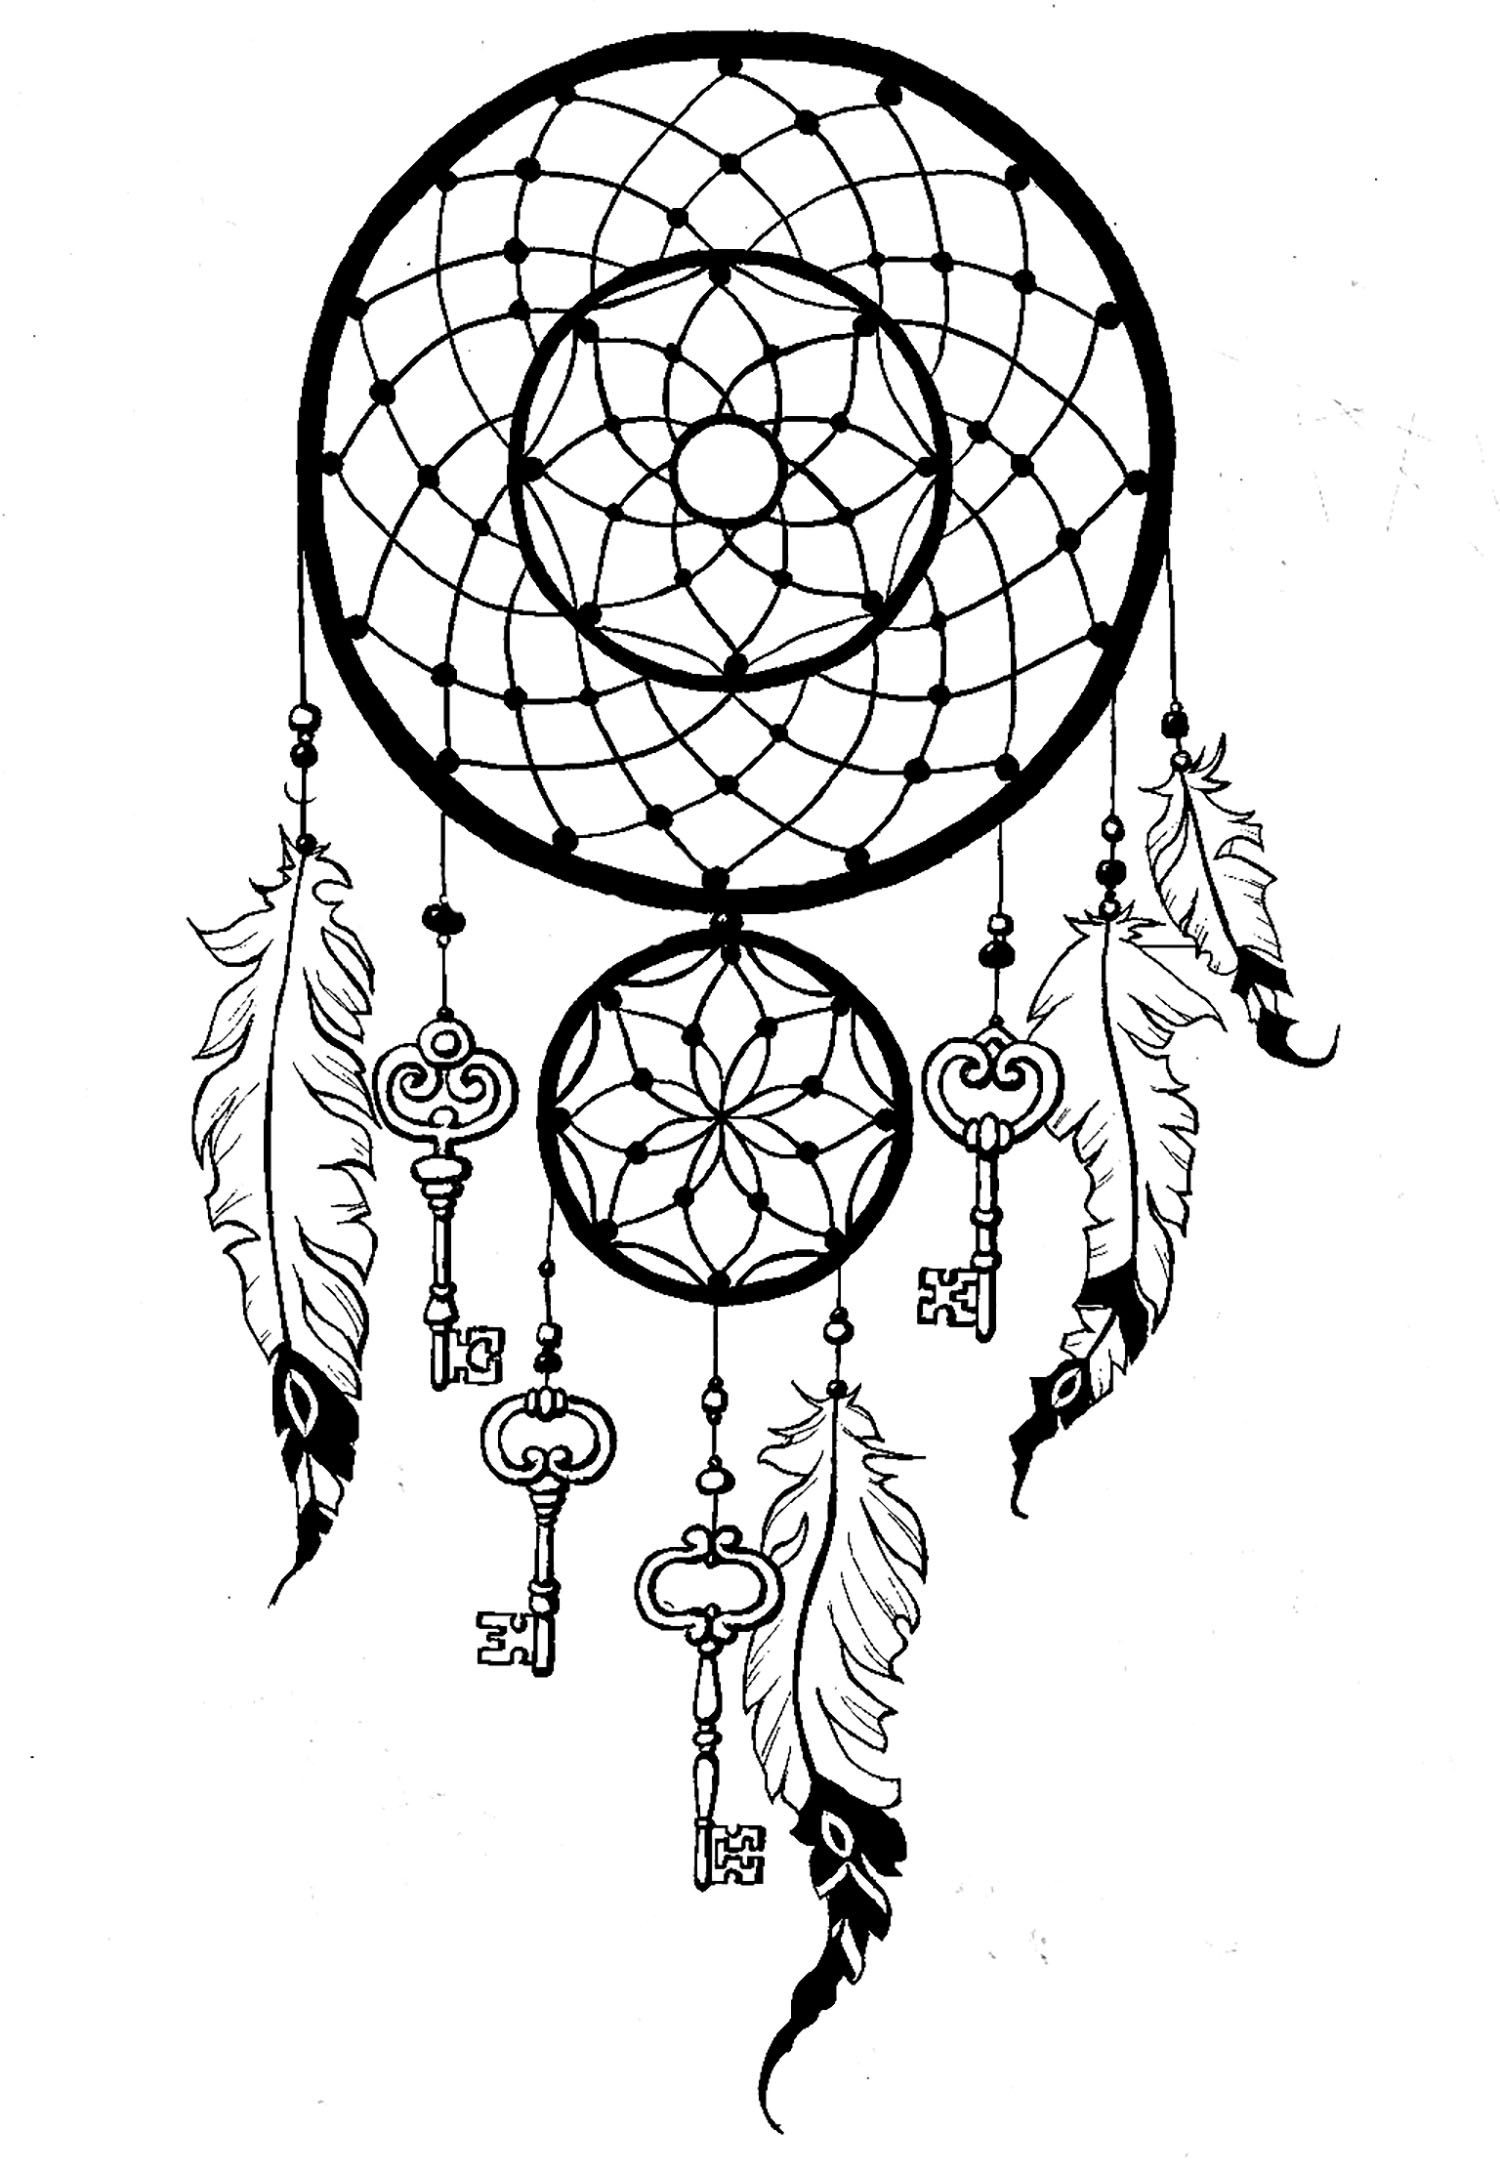 Dreamcatcher To Print And Color KeysFrom The Gallery Zen Anti Stress